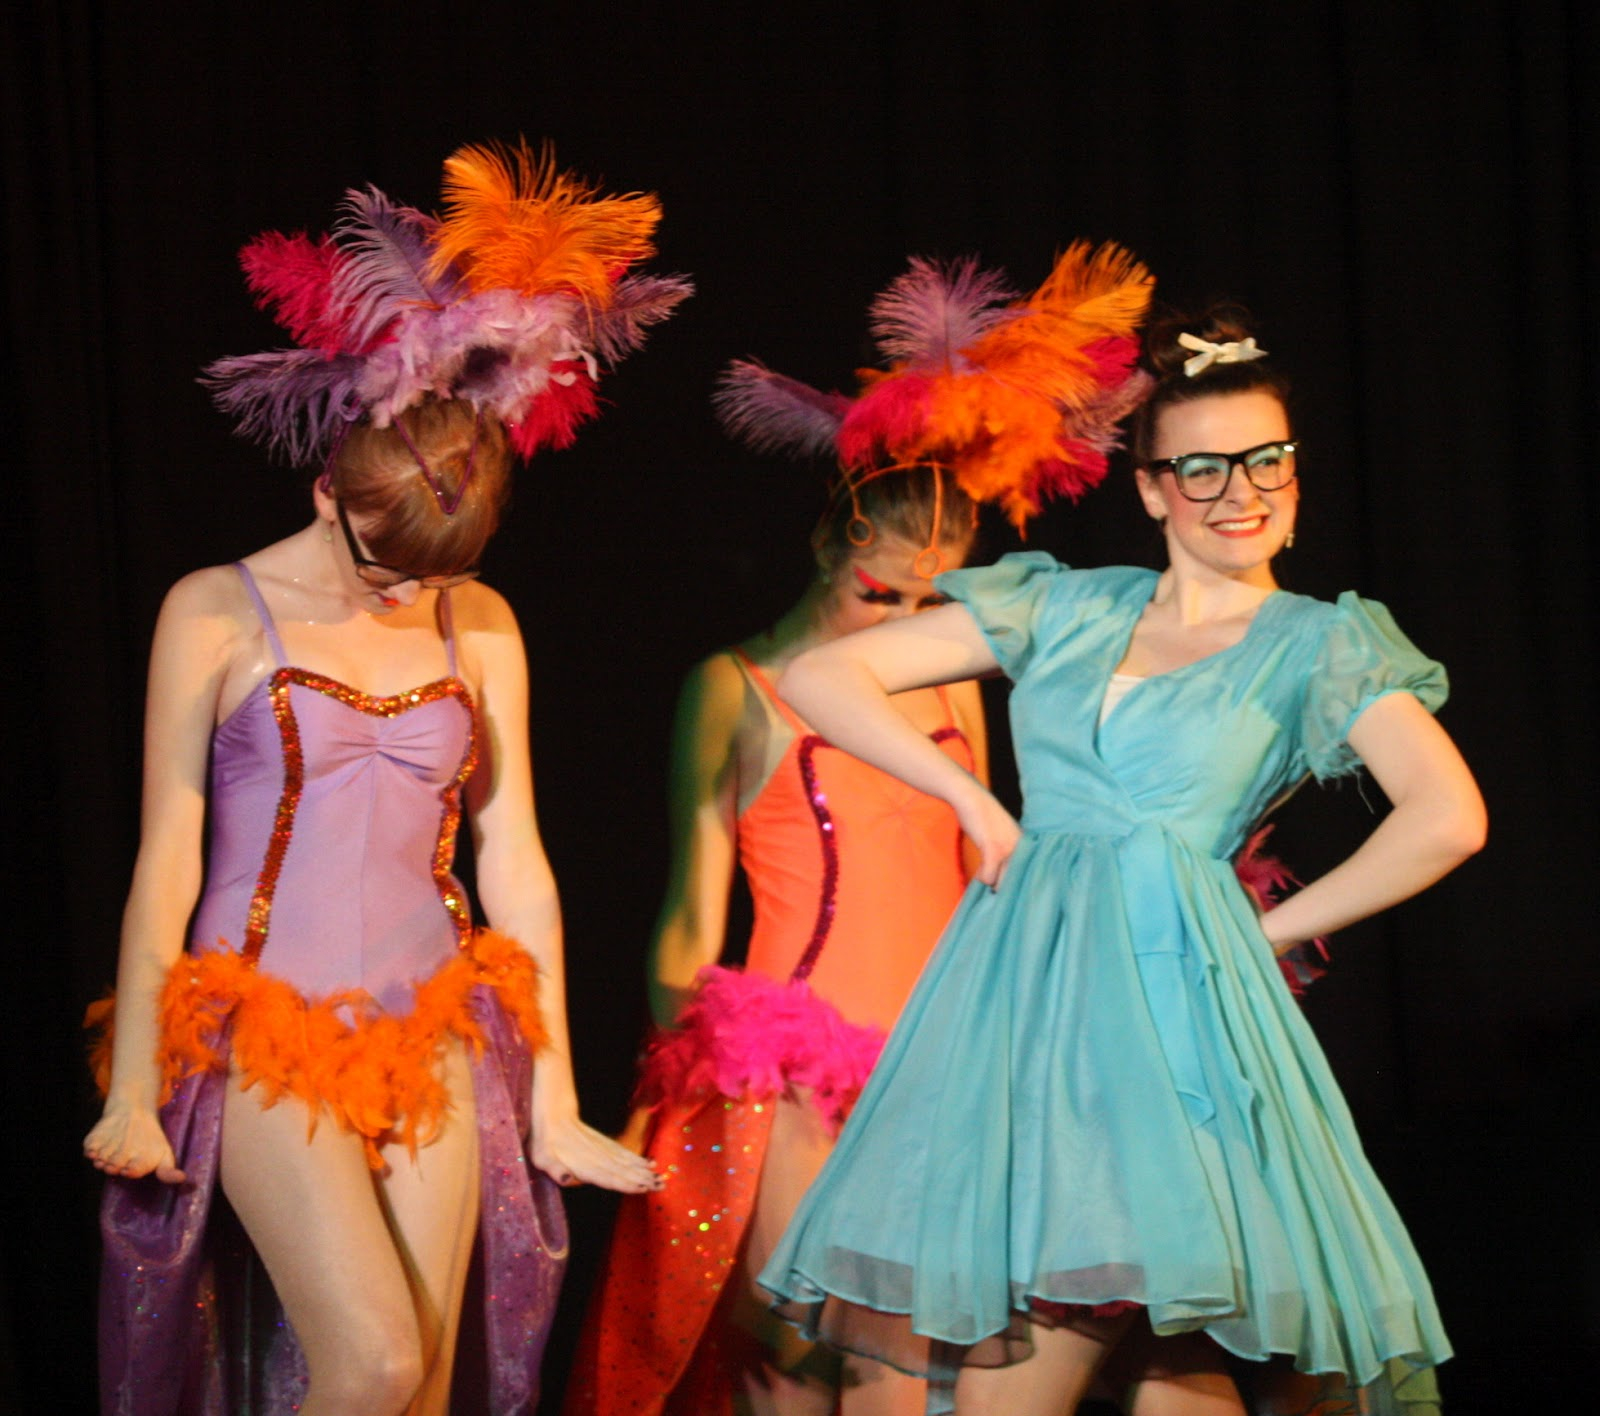 Head dresses (Copyright Peter Cook)  sc 1 st  The Old Button & The Old Button: Making the Costumes for Seussical the Musicals ...